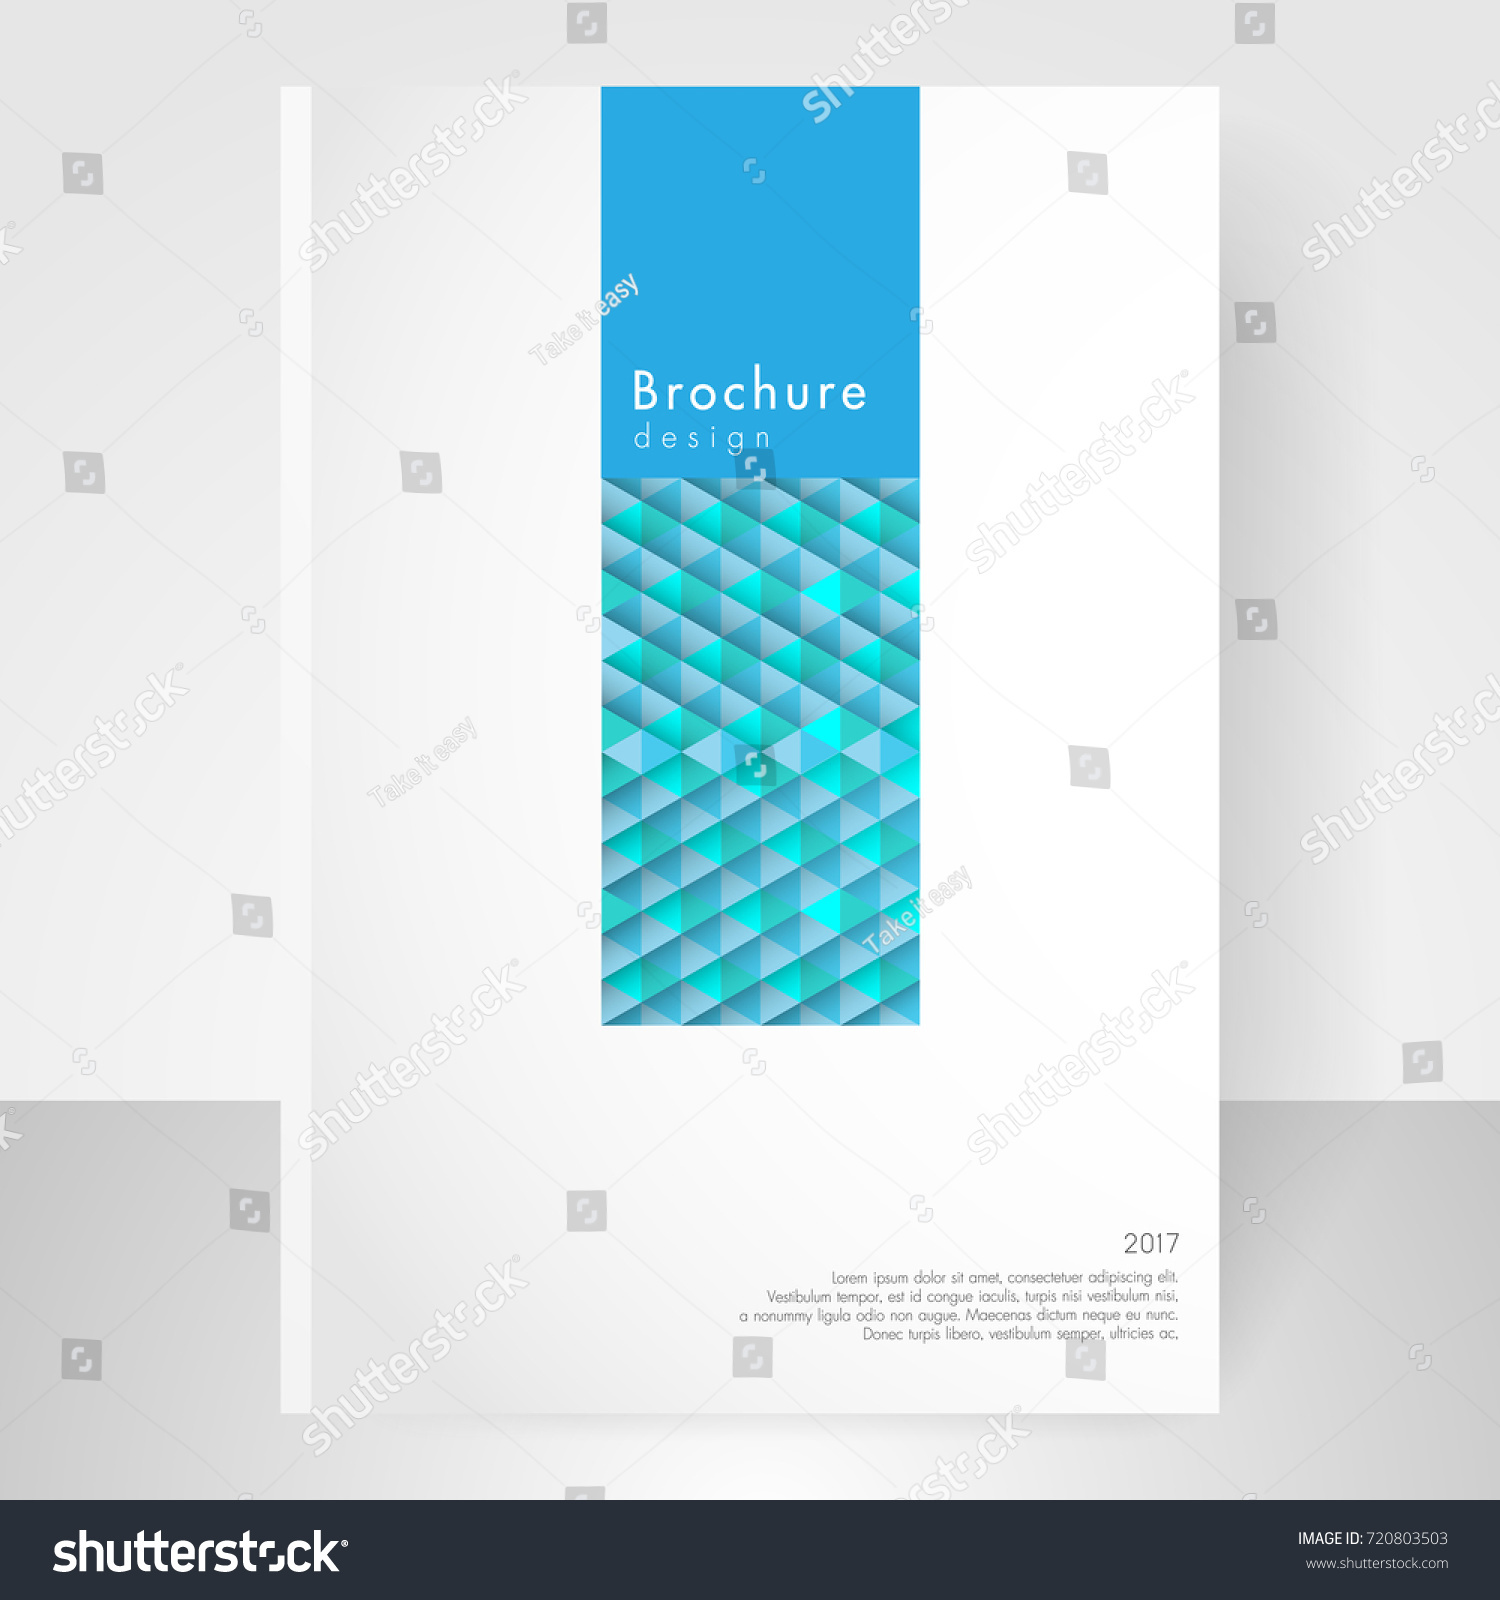 business brochure cover template cover design stock vector 720803503